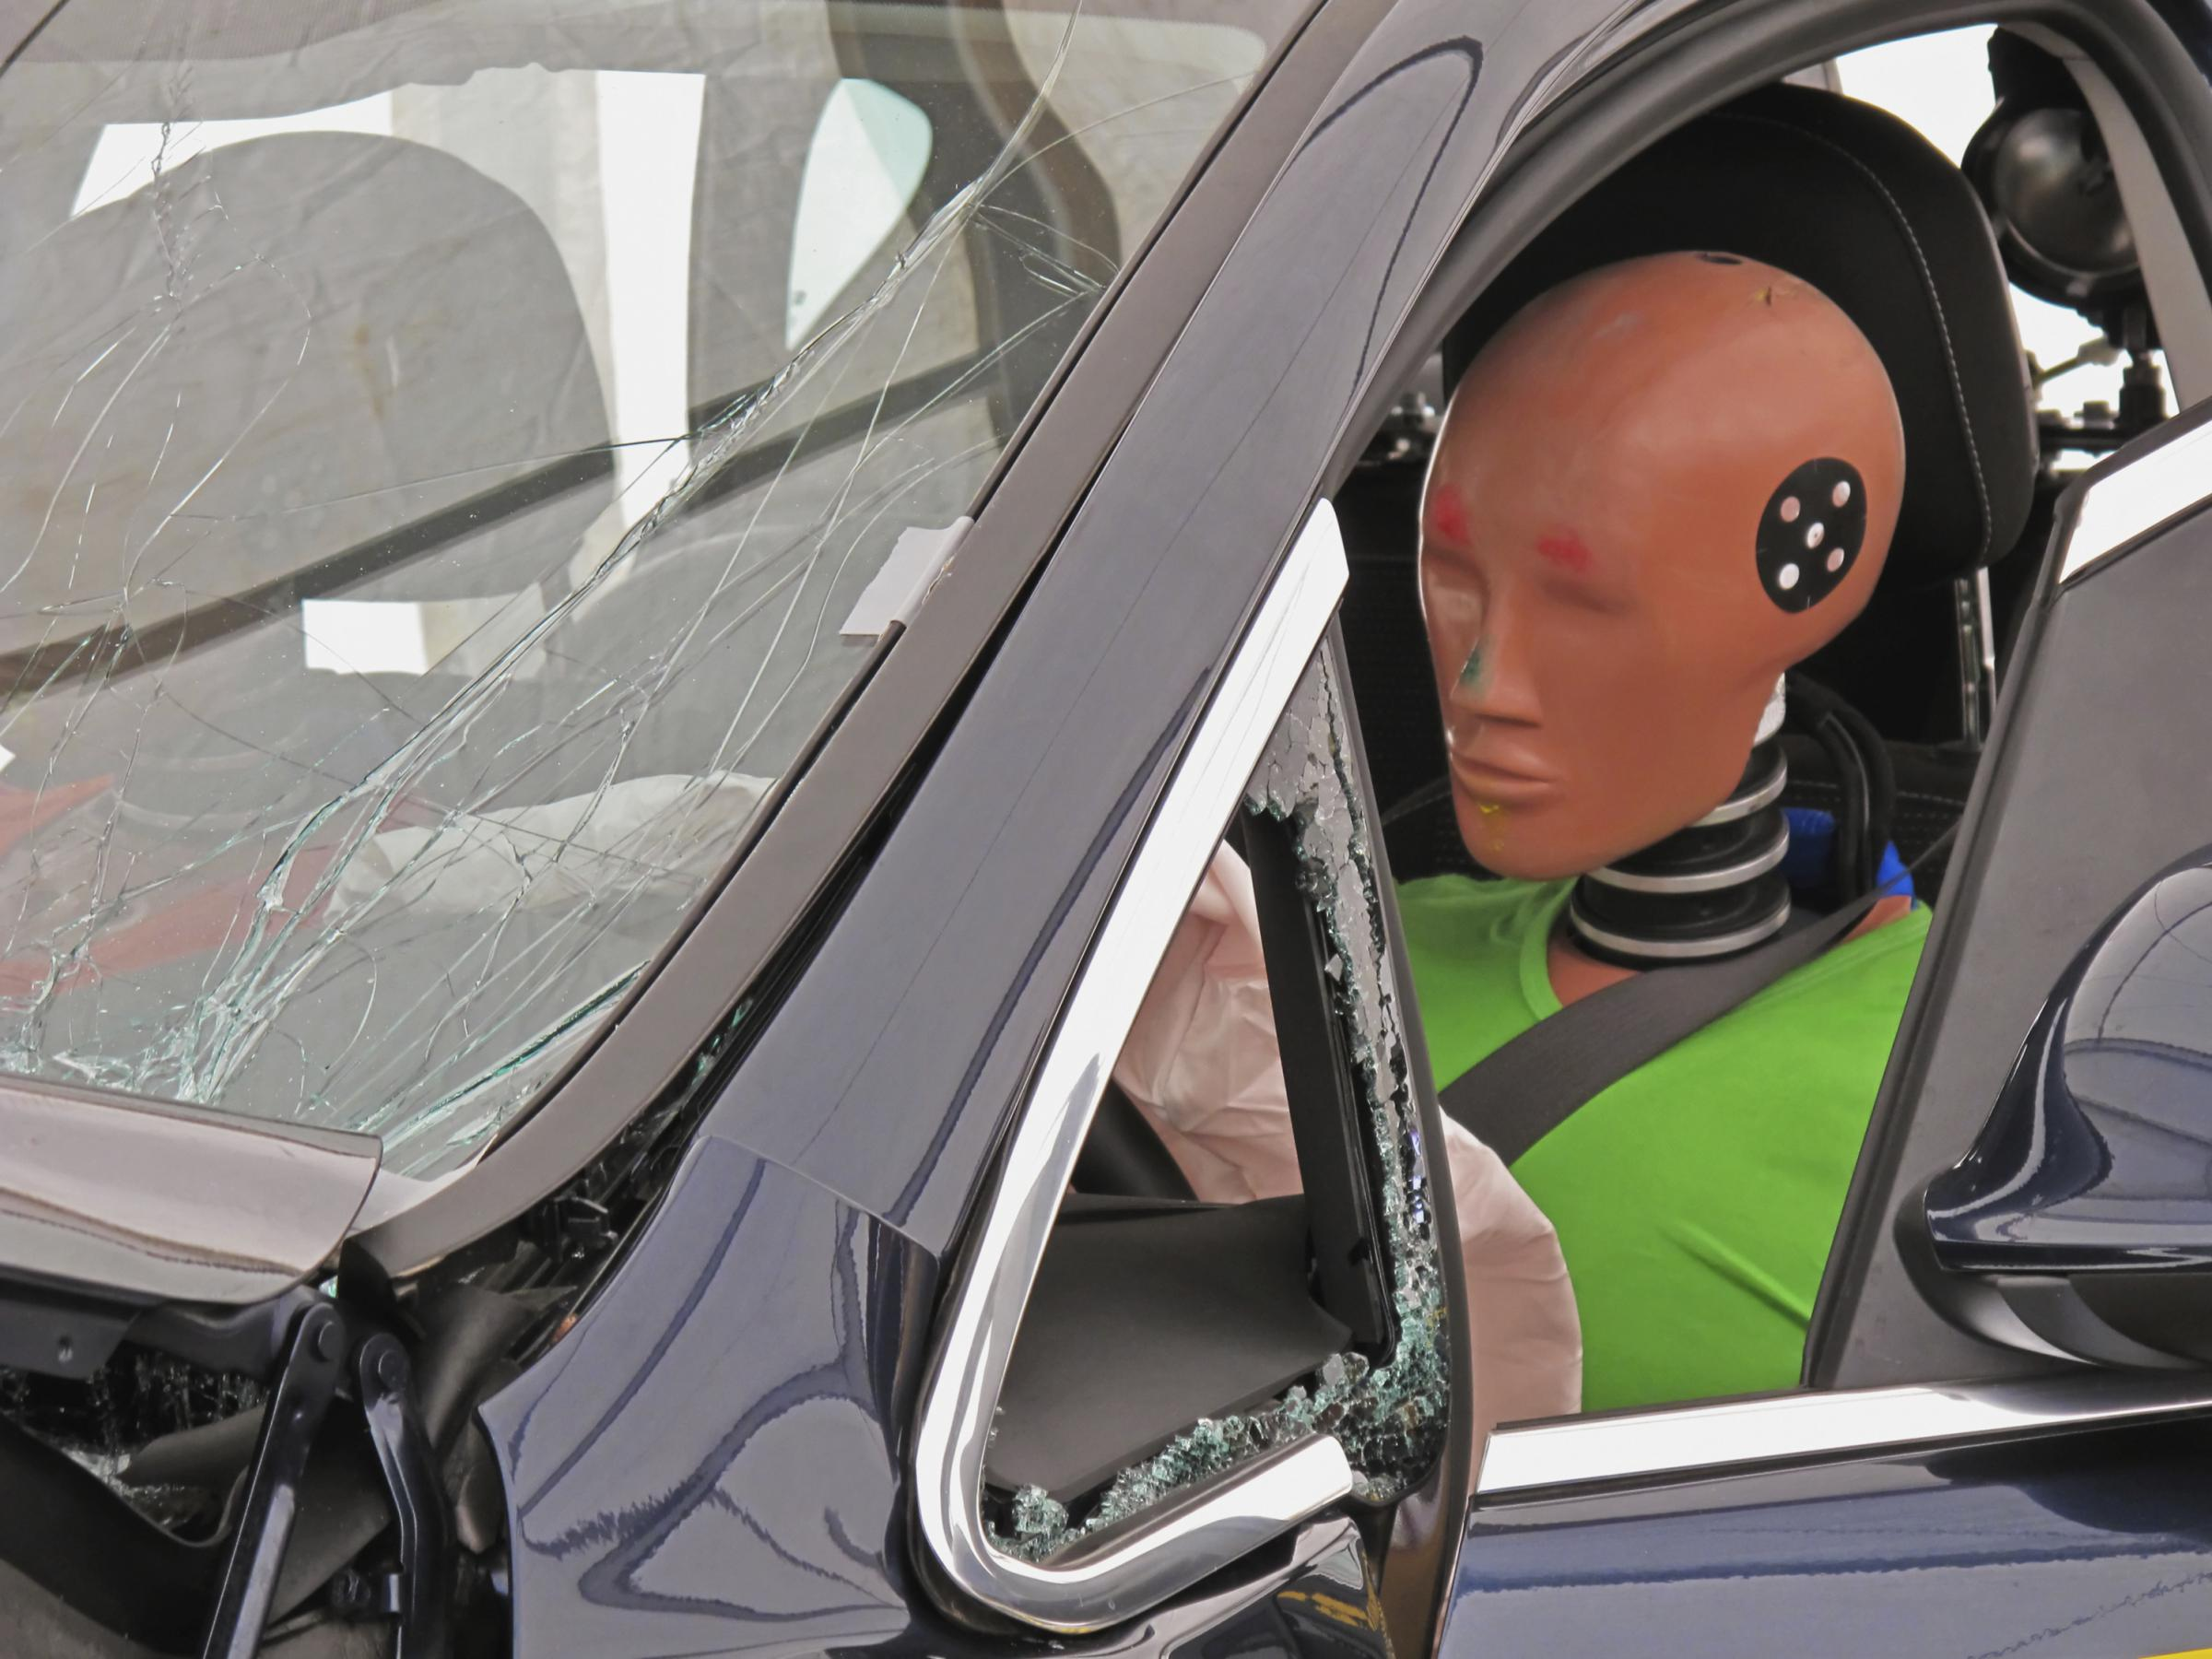 New Crash Test Dummy To Gain Pounds Reflect Fatalities Among Originally Posted By The Not This One Will Weigh 271 Lbs And Have A Body Mass Index Of 35 Automakers Use Dummies Prove Their Vehicles Are